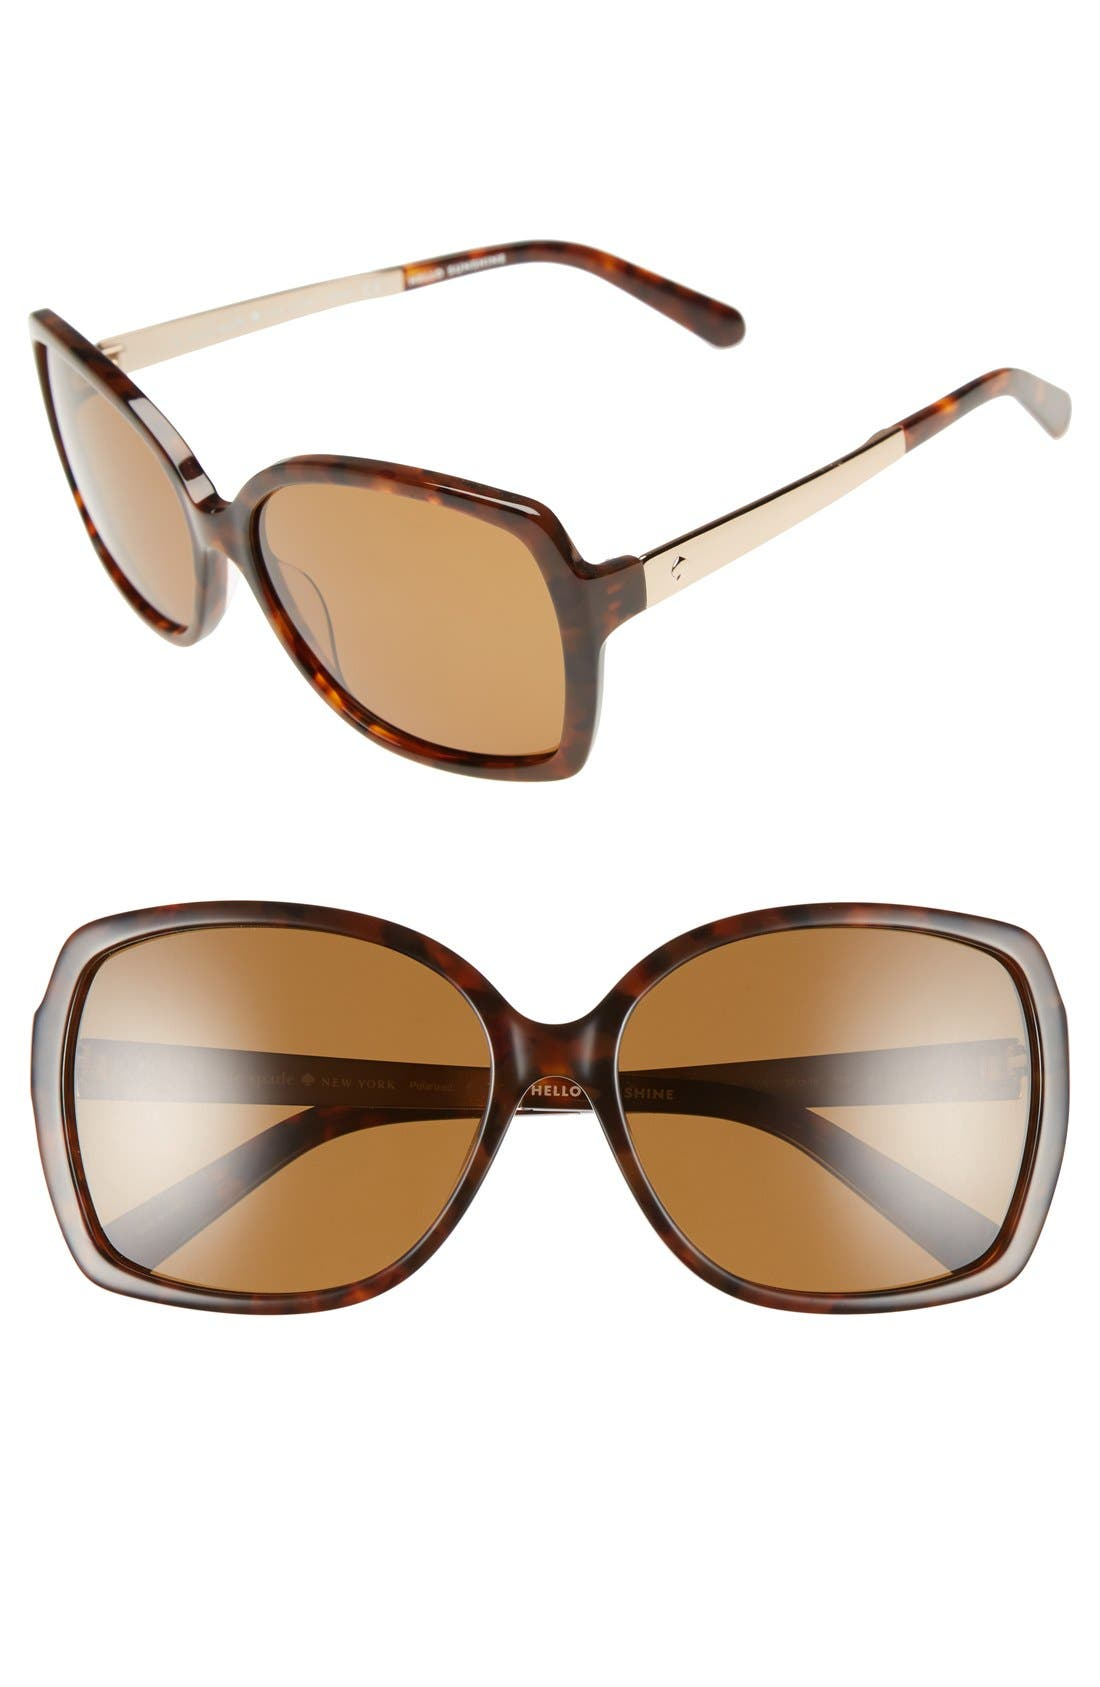 KATE SPADE NEW YORK darilynn 58mm polarized sunglasses